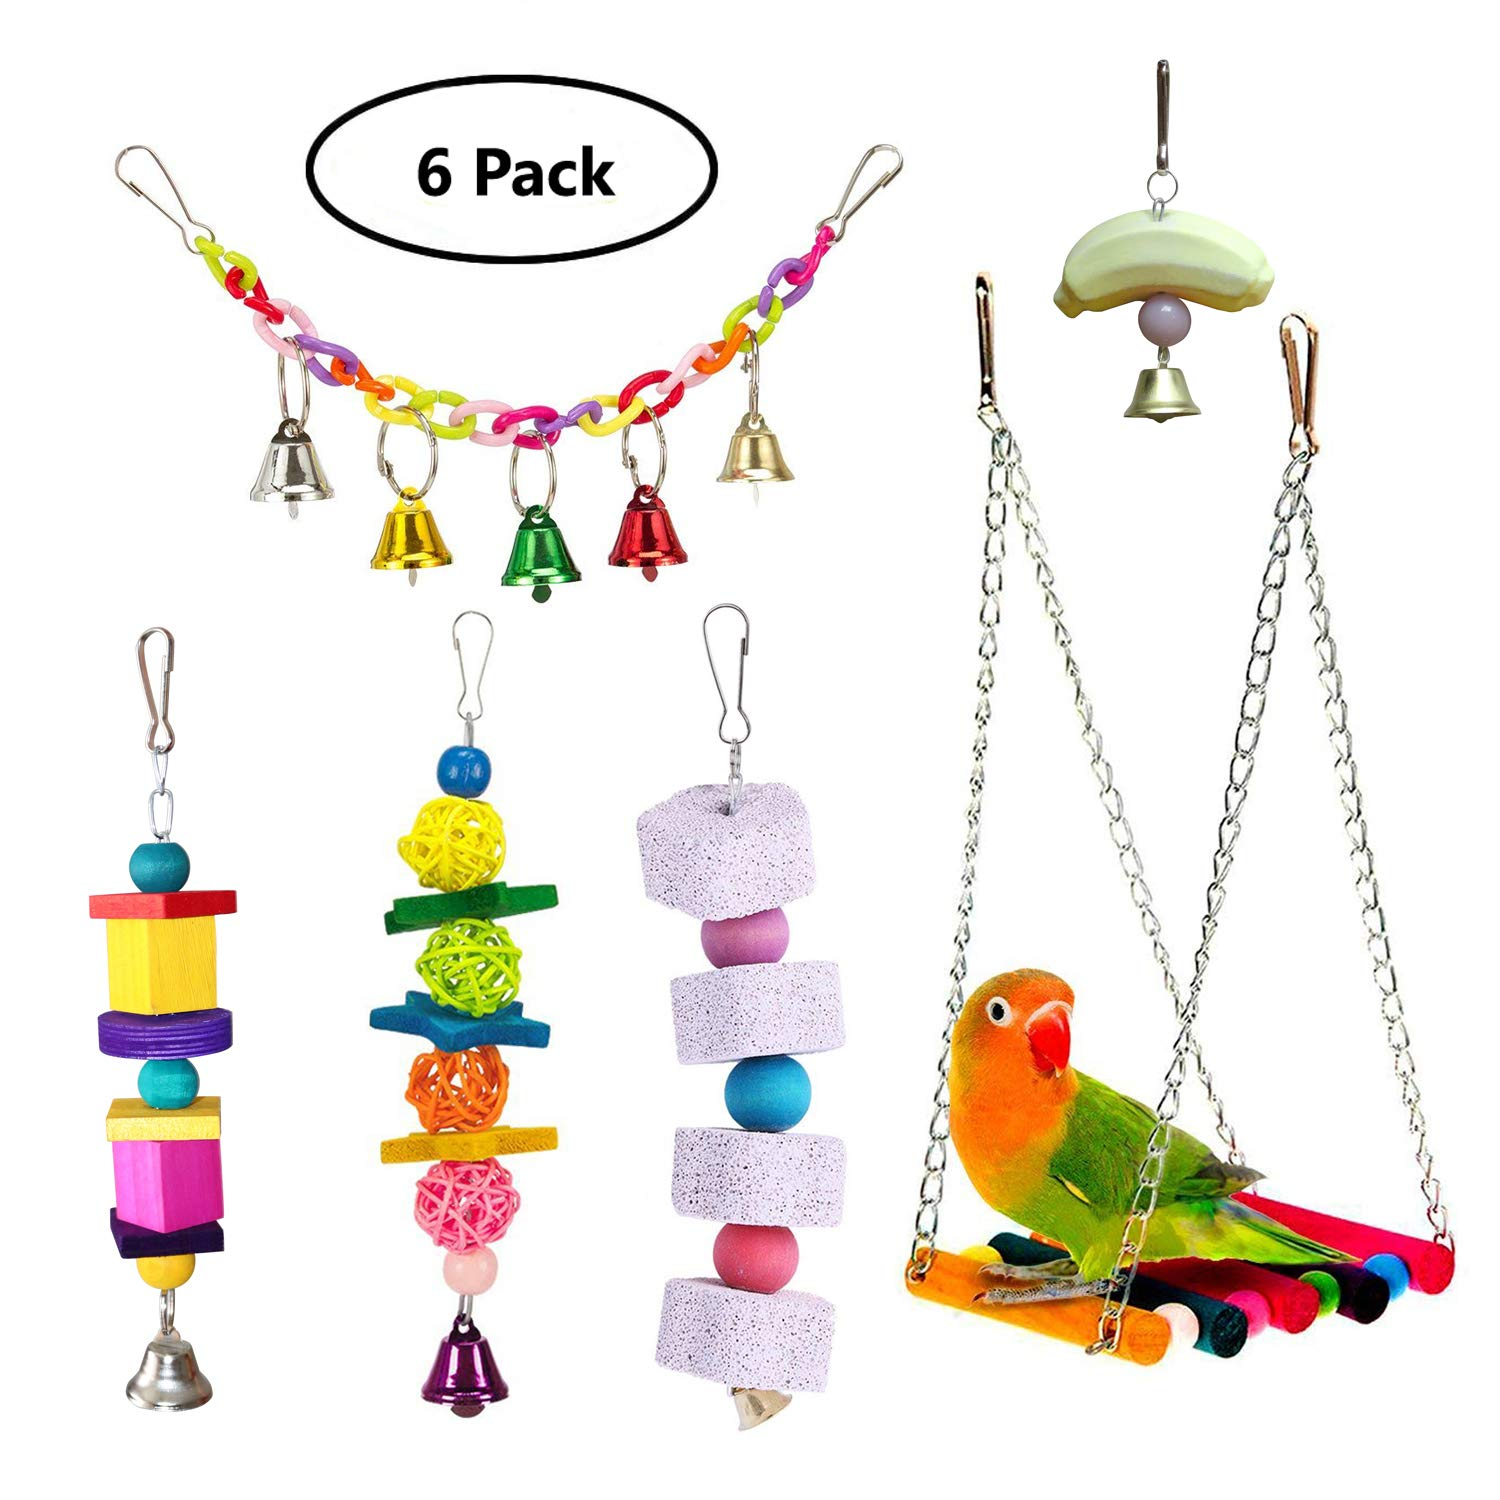 BWOGUE Bird Swing Toys with Bells Pet Bird Parrot Cage Hammock Ladder Hanging Chewing Toy Perch for Budgie Love Birds Conures Small Parakeets Finches Cockatiels (6 Pack) by BWOGUE